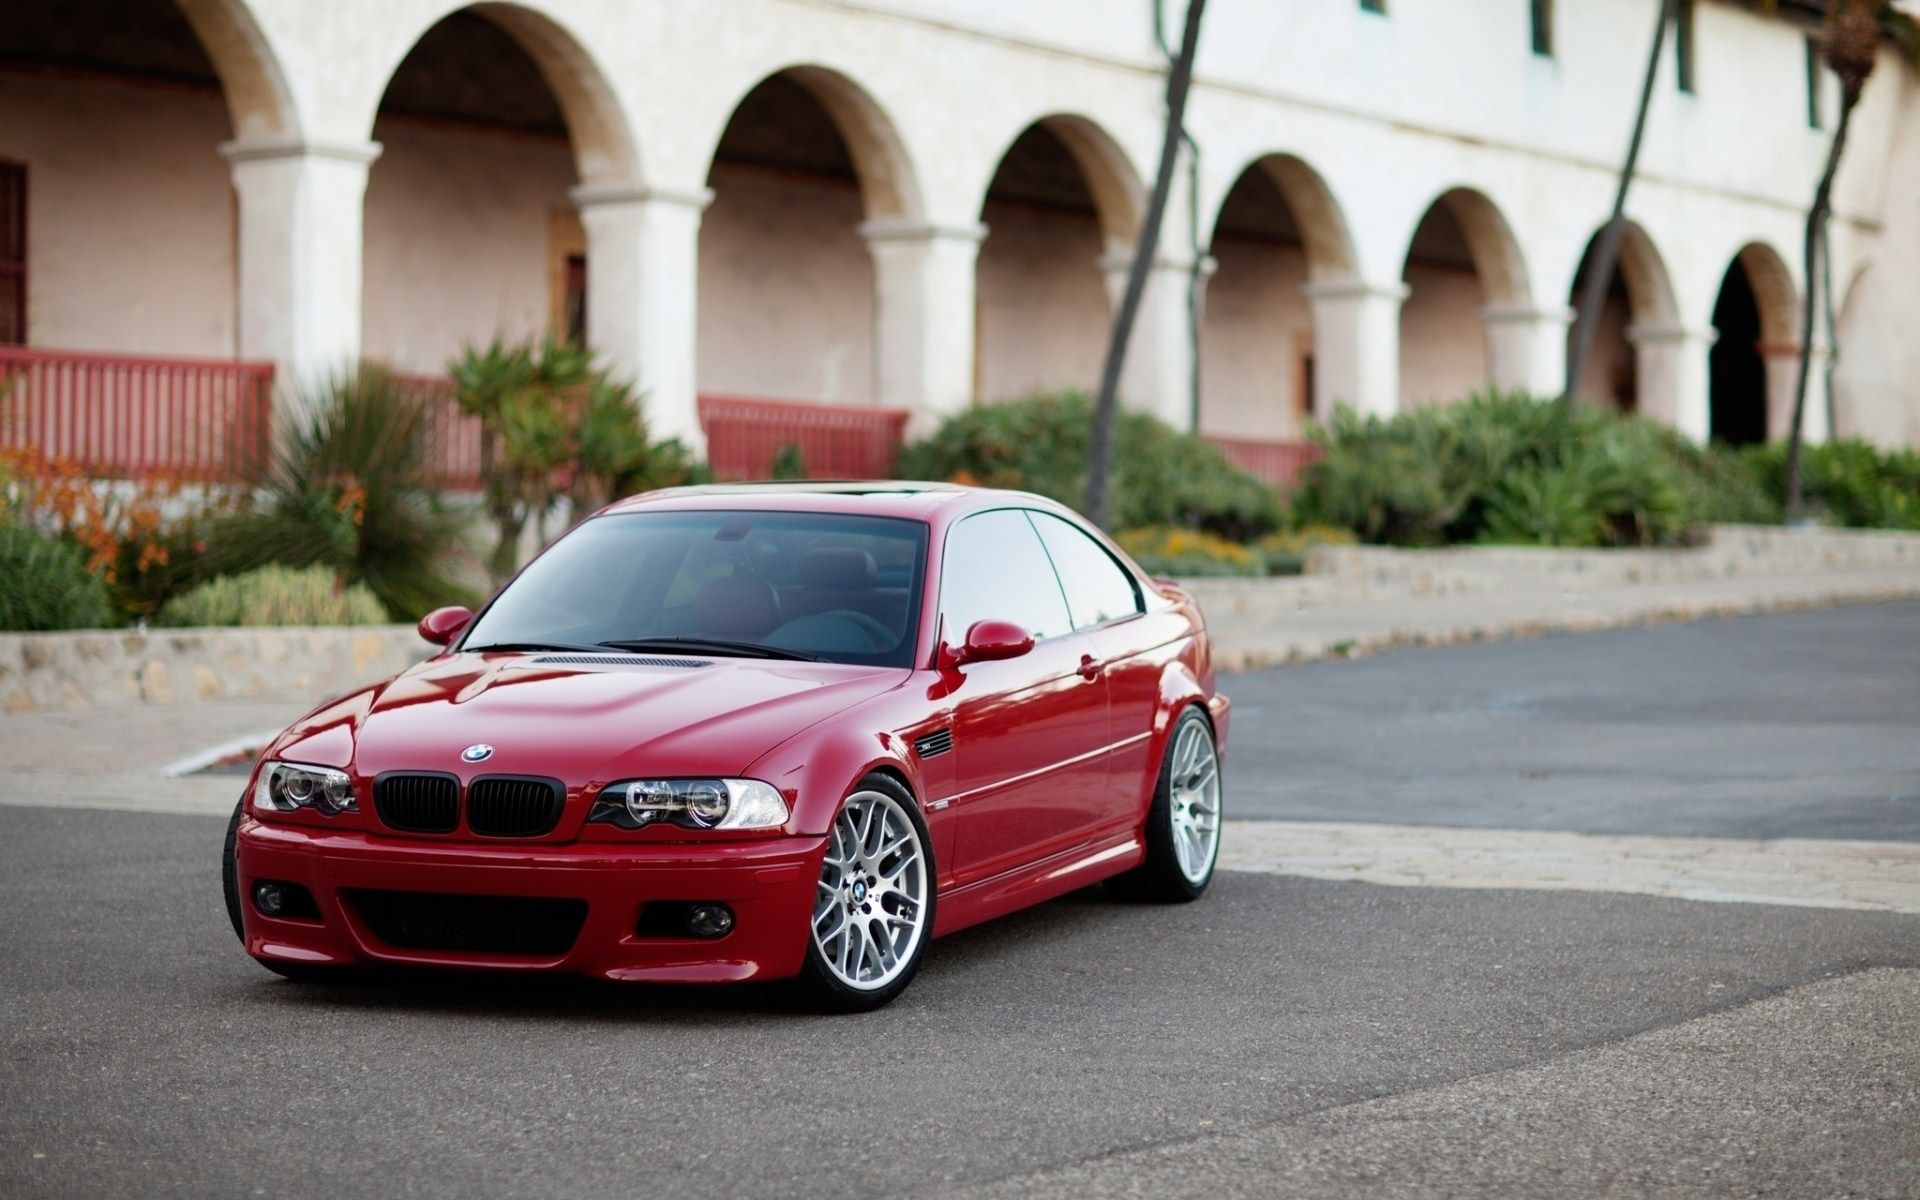 wallpaper.wiki-hd-bmw-e46-m3-images-pic-wpb0014264 | wallpaper.wiki